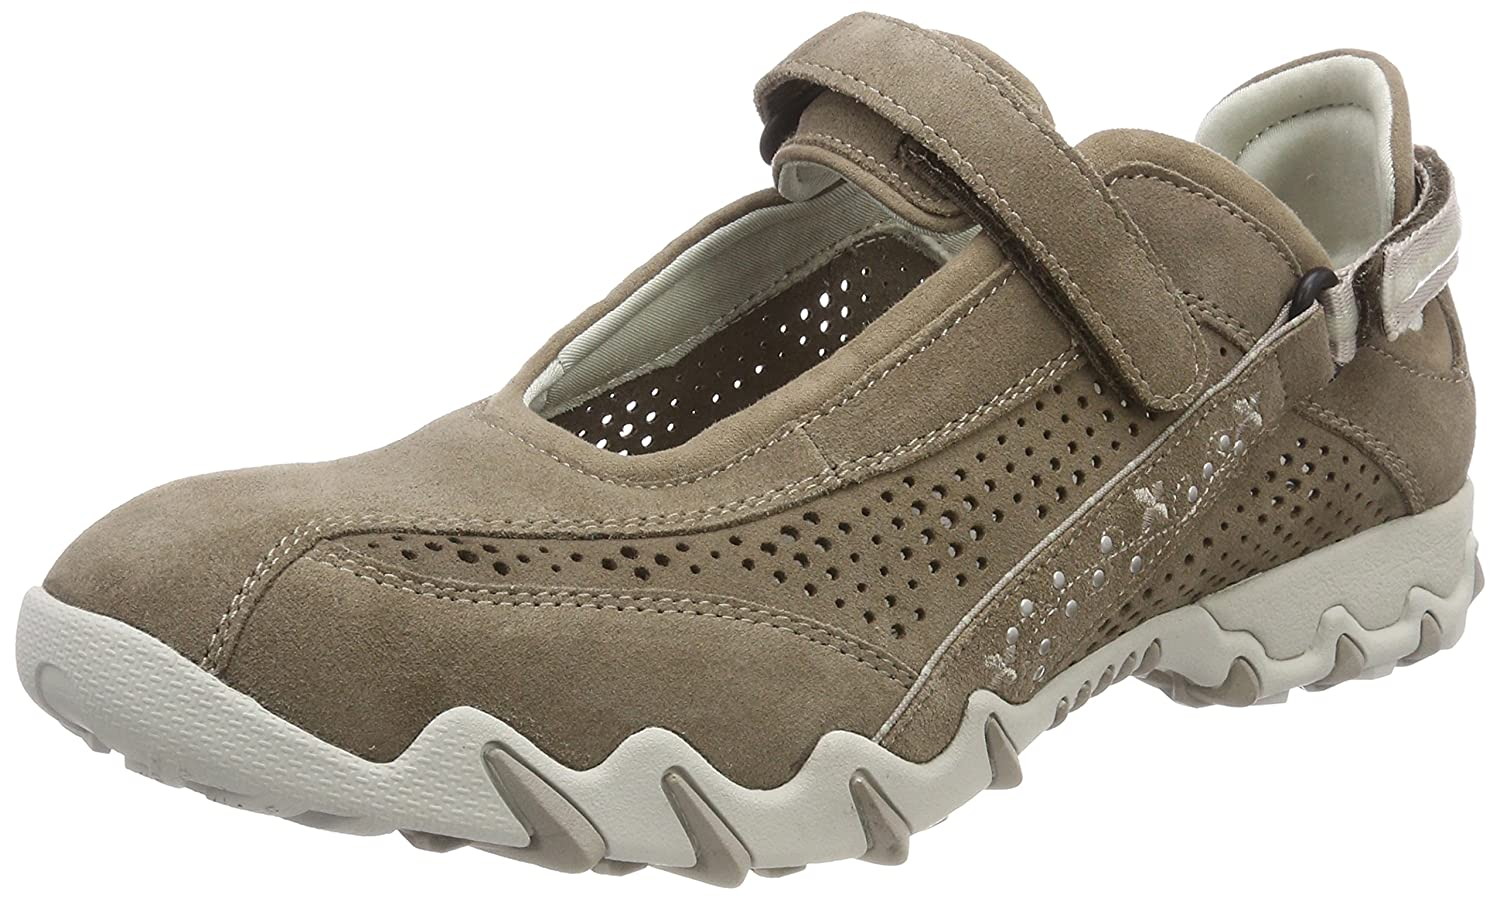 Allrounder by Mephisto P2003563, Scarpe outdoor multisport Donna  Beige (Taupe)